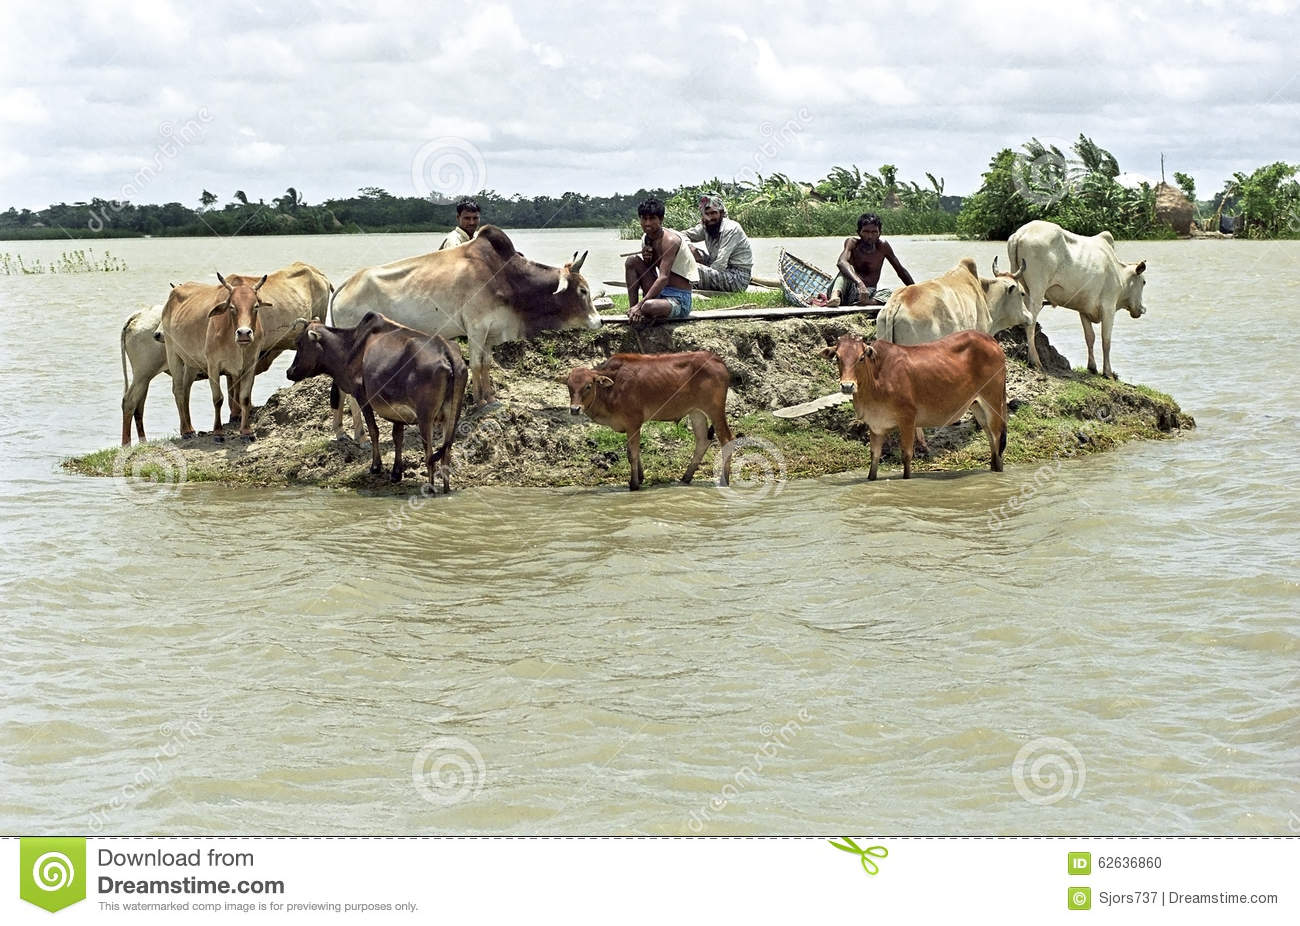 Flooding in the delta Bangladesh, climate changes